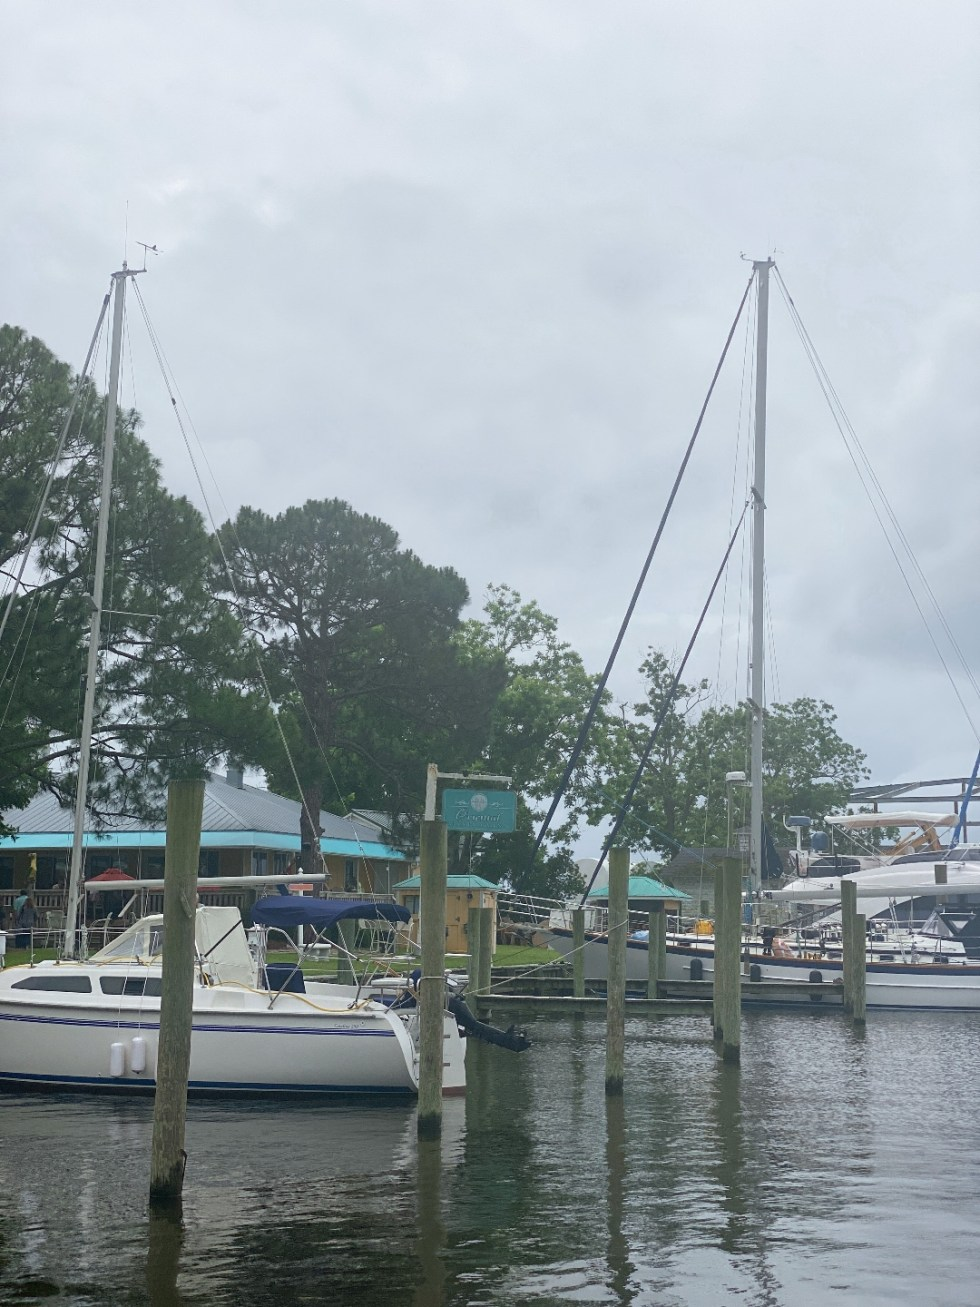 What to Do in Oriental, NC - I'm Fixin' To - @imfixintoblog | Things to do in Oriental NC by popular NC travel blog, I'm Fixin' To: image of the Oriental NC marina filled with sail boats.